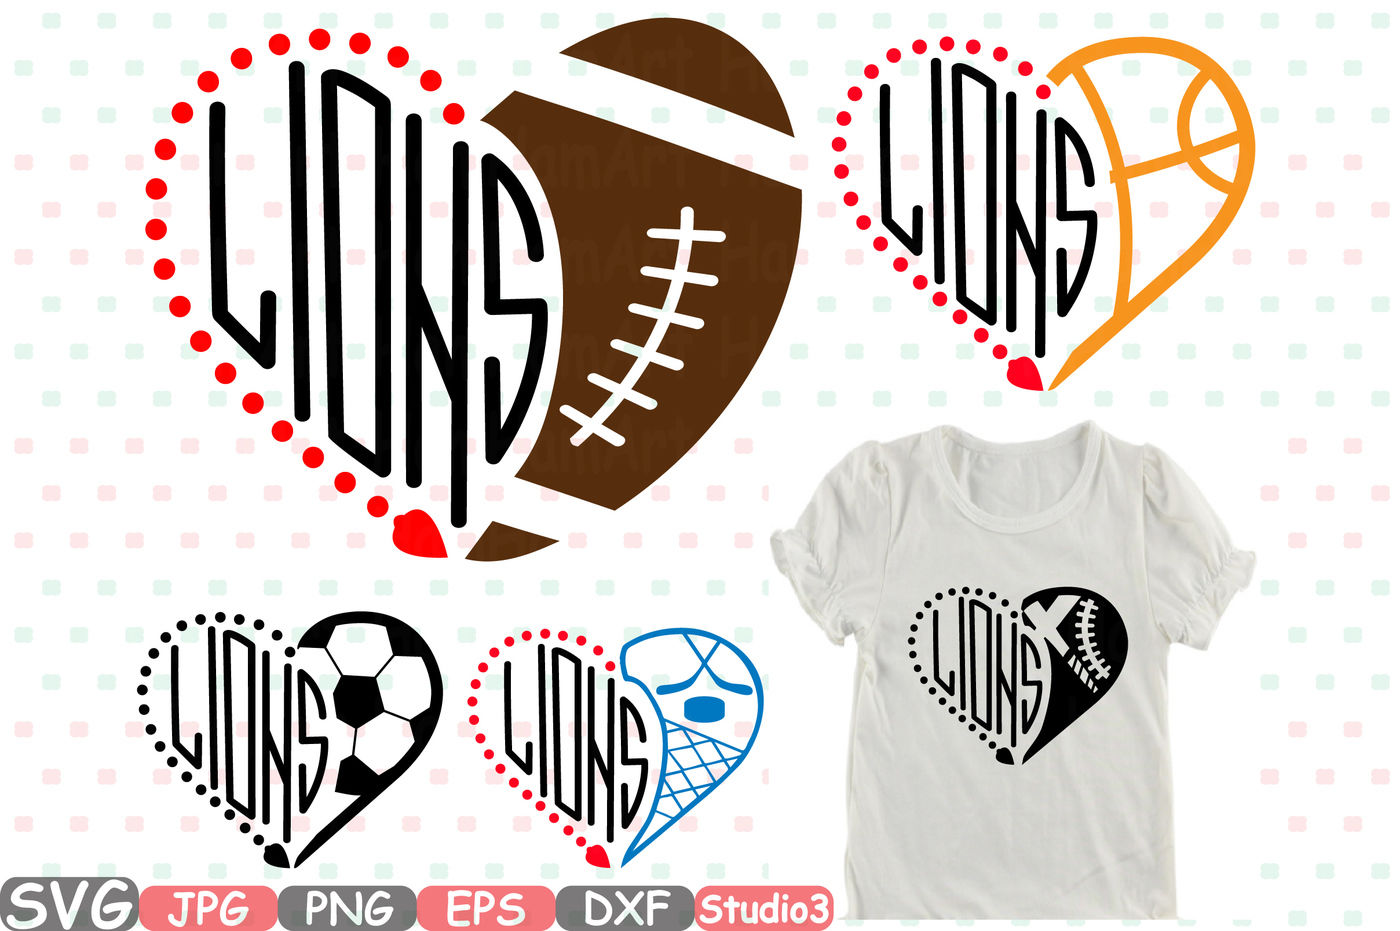 Lions Detroit Sport Silhouette Svg Nfl Nba Mlb Ncaaf 844s By